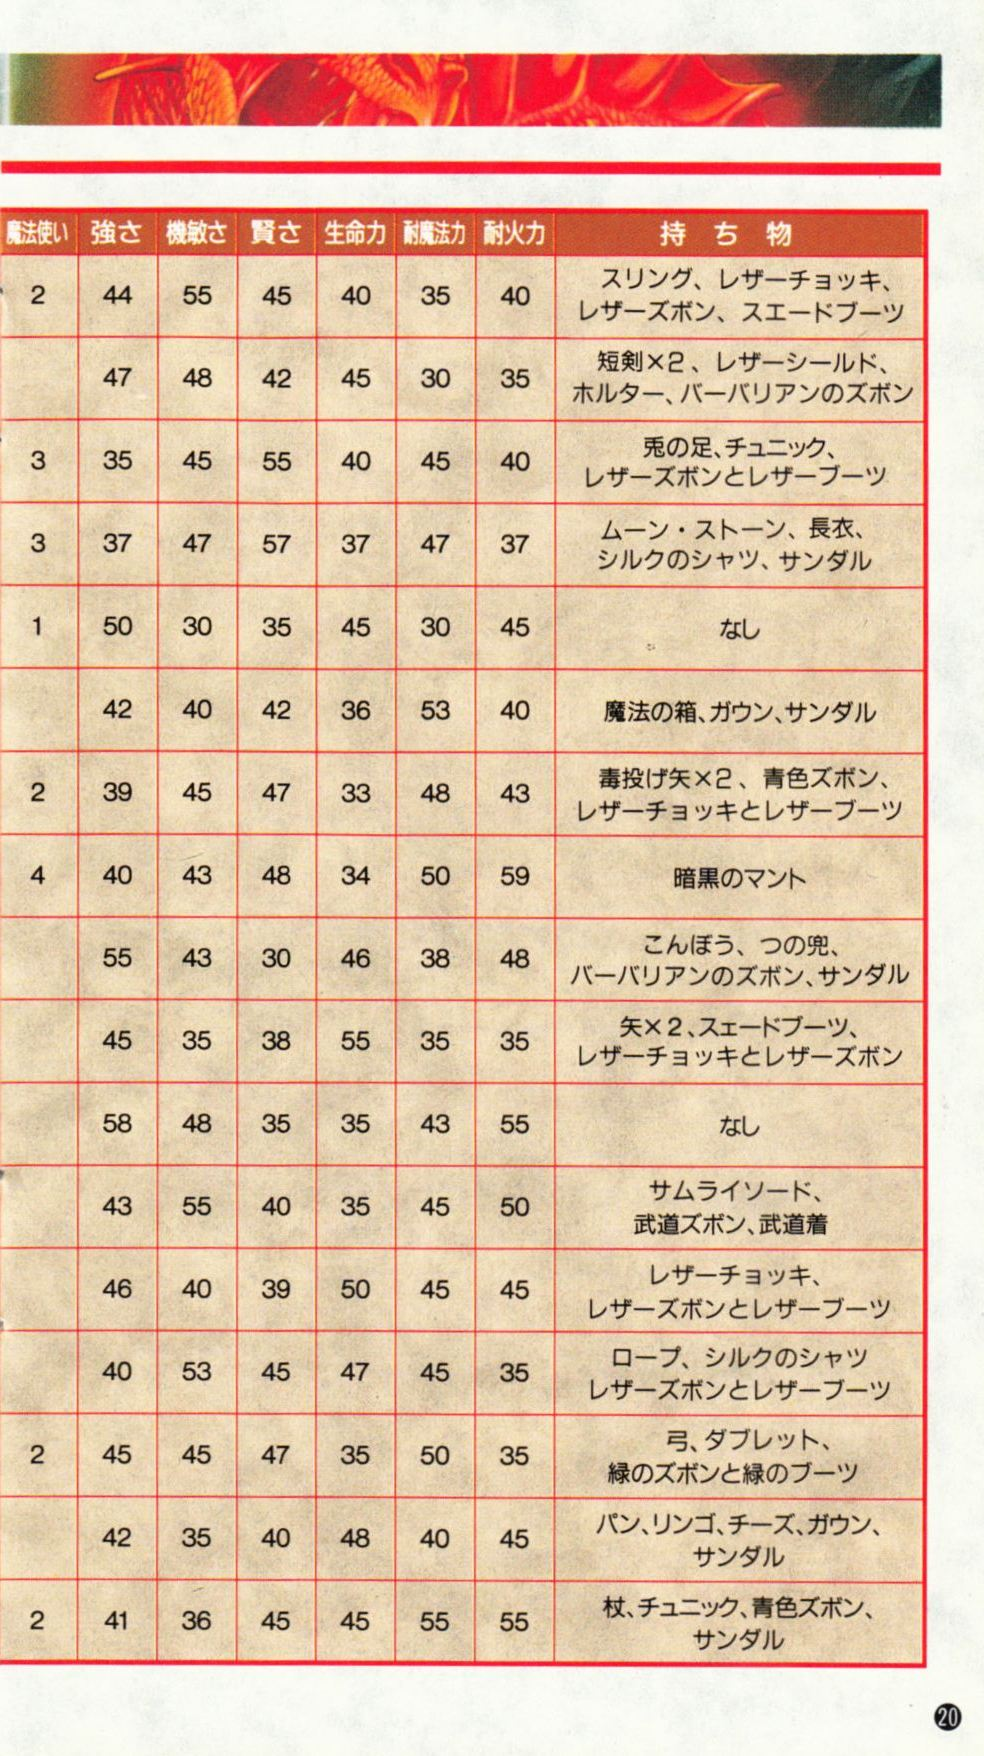 Game - Dungeon Master - JP - Super Famicom - Manual - Page 023 - Scan